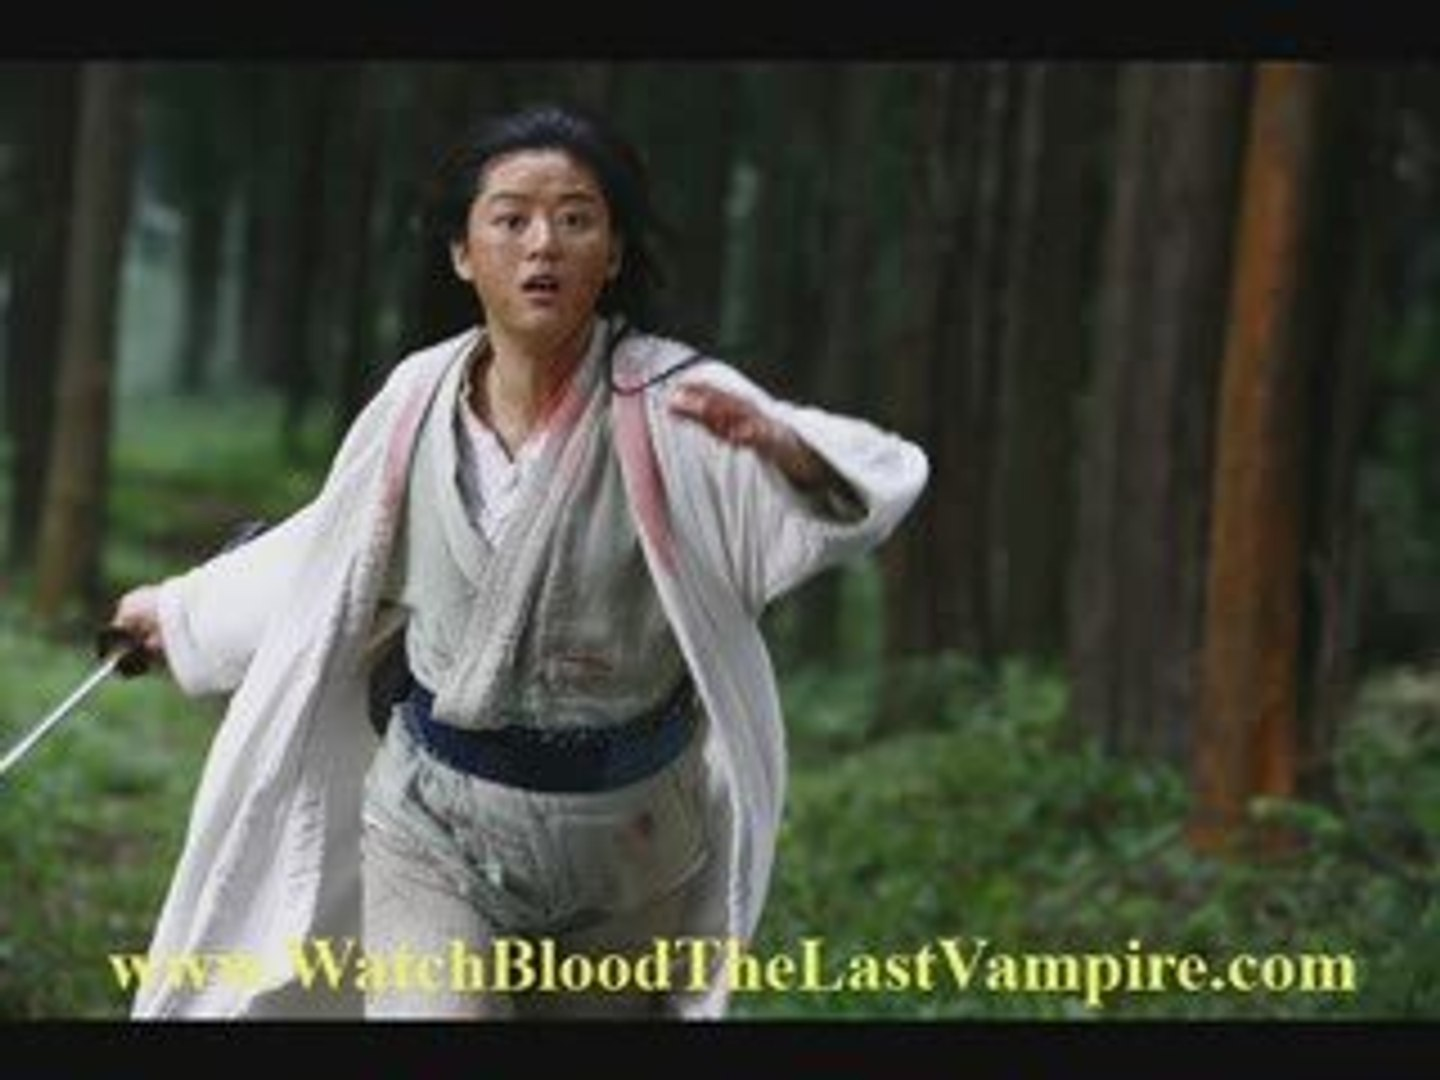 watch blood the last vampire movie online stream for free